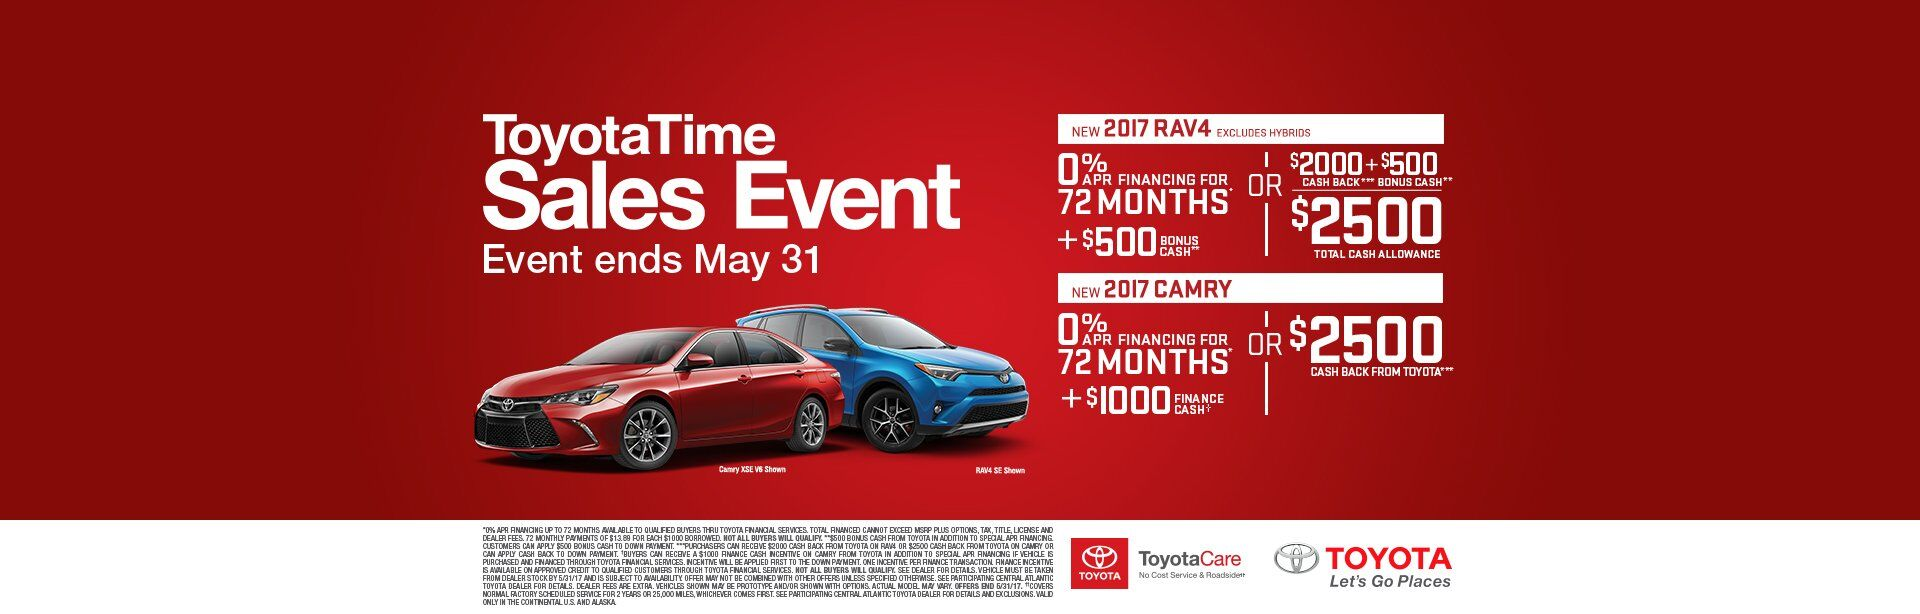 ToyotaTime Sales Event Rav4 Camry